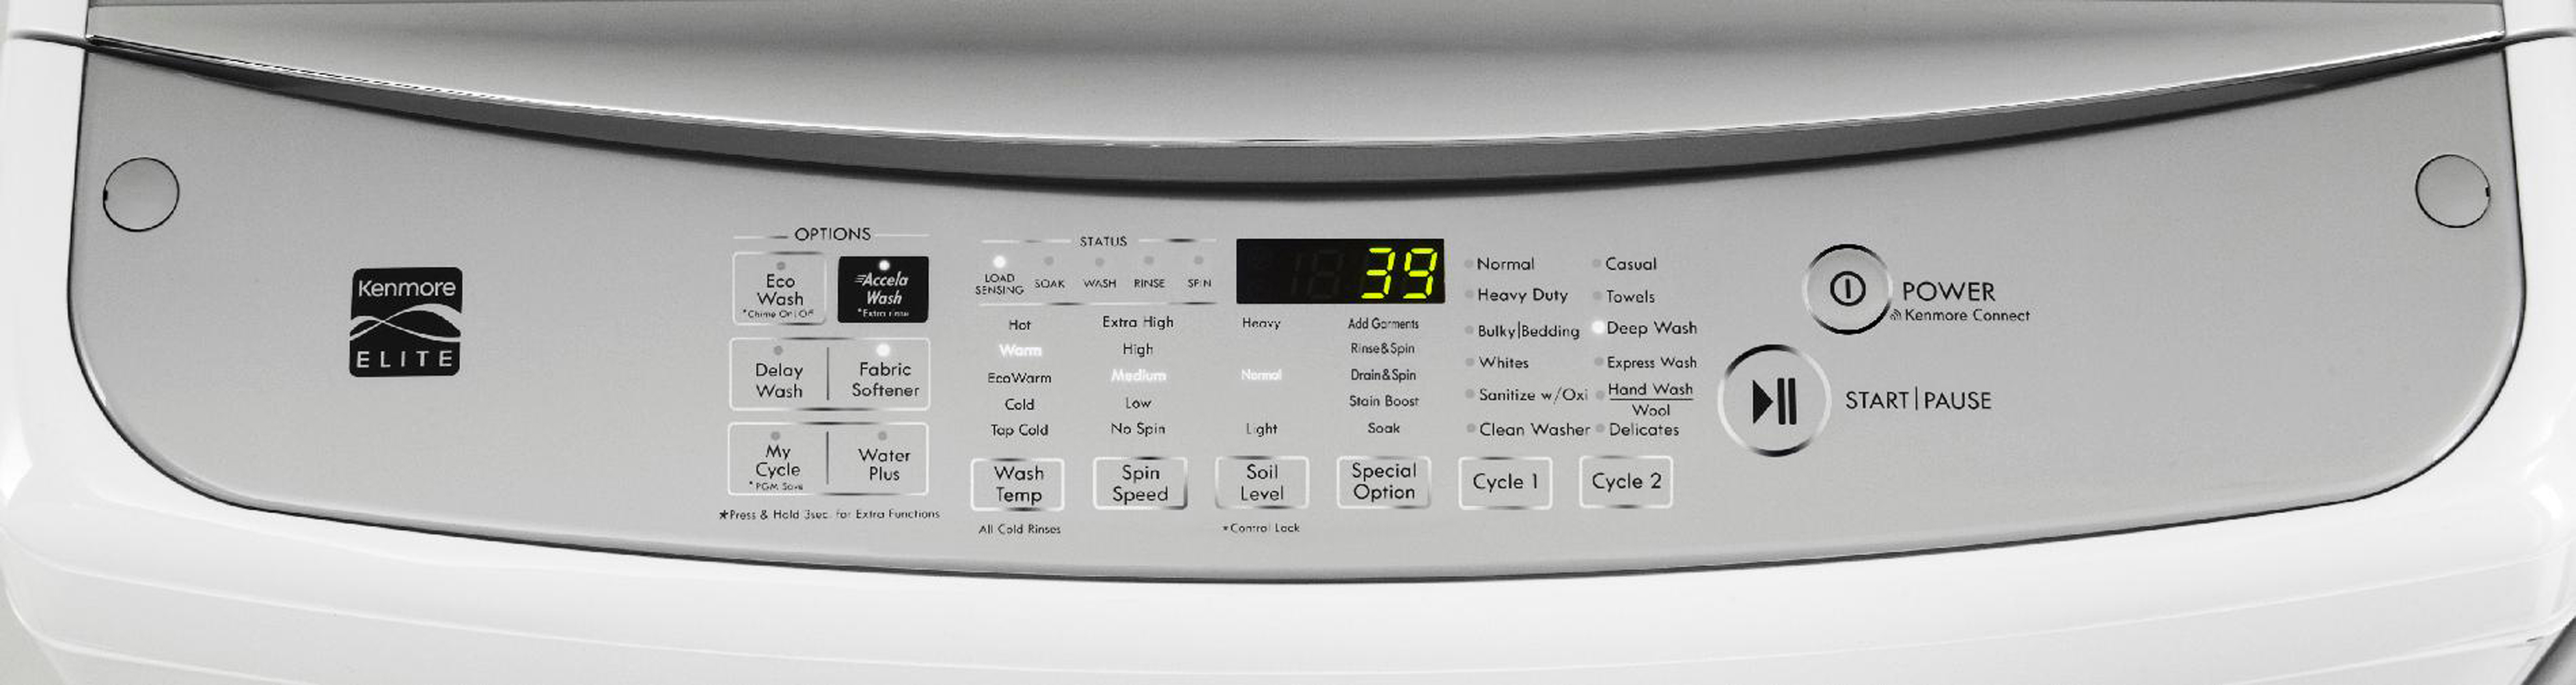 Kenmore Elite 5.0 cu. ft. Top-Load Washer - White